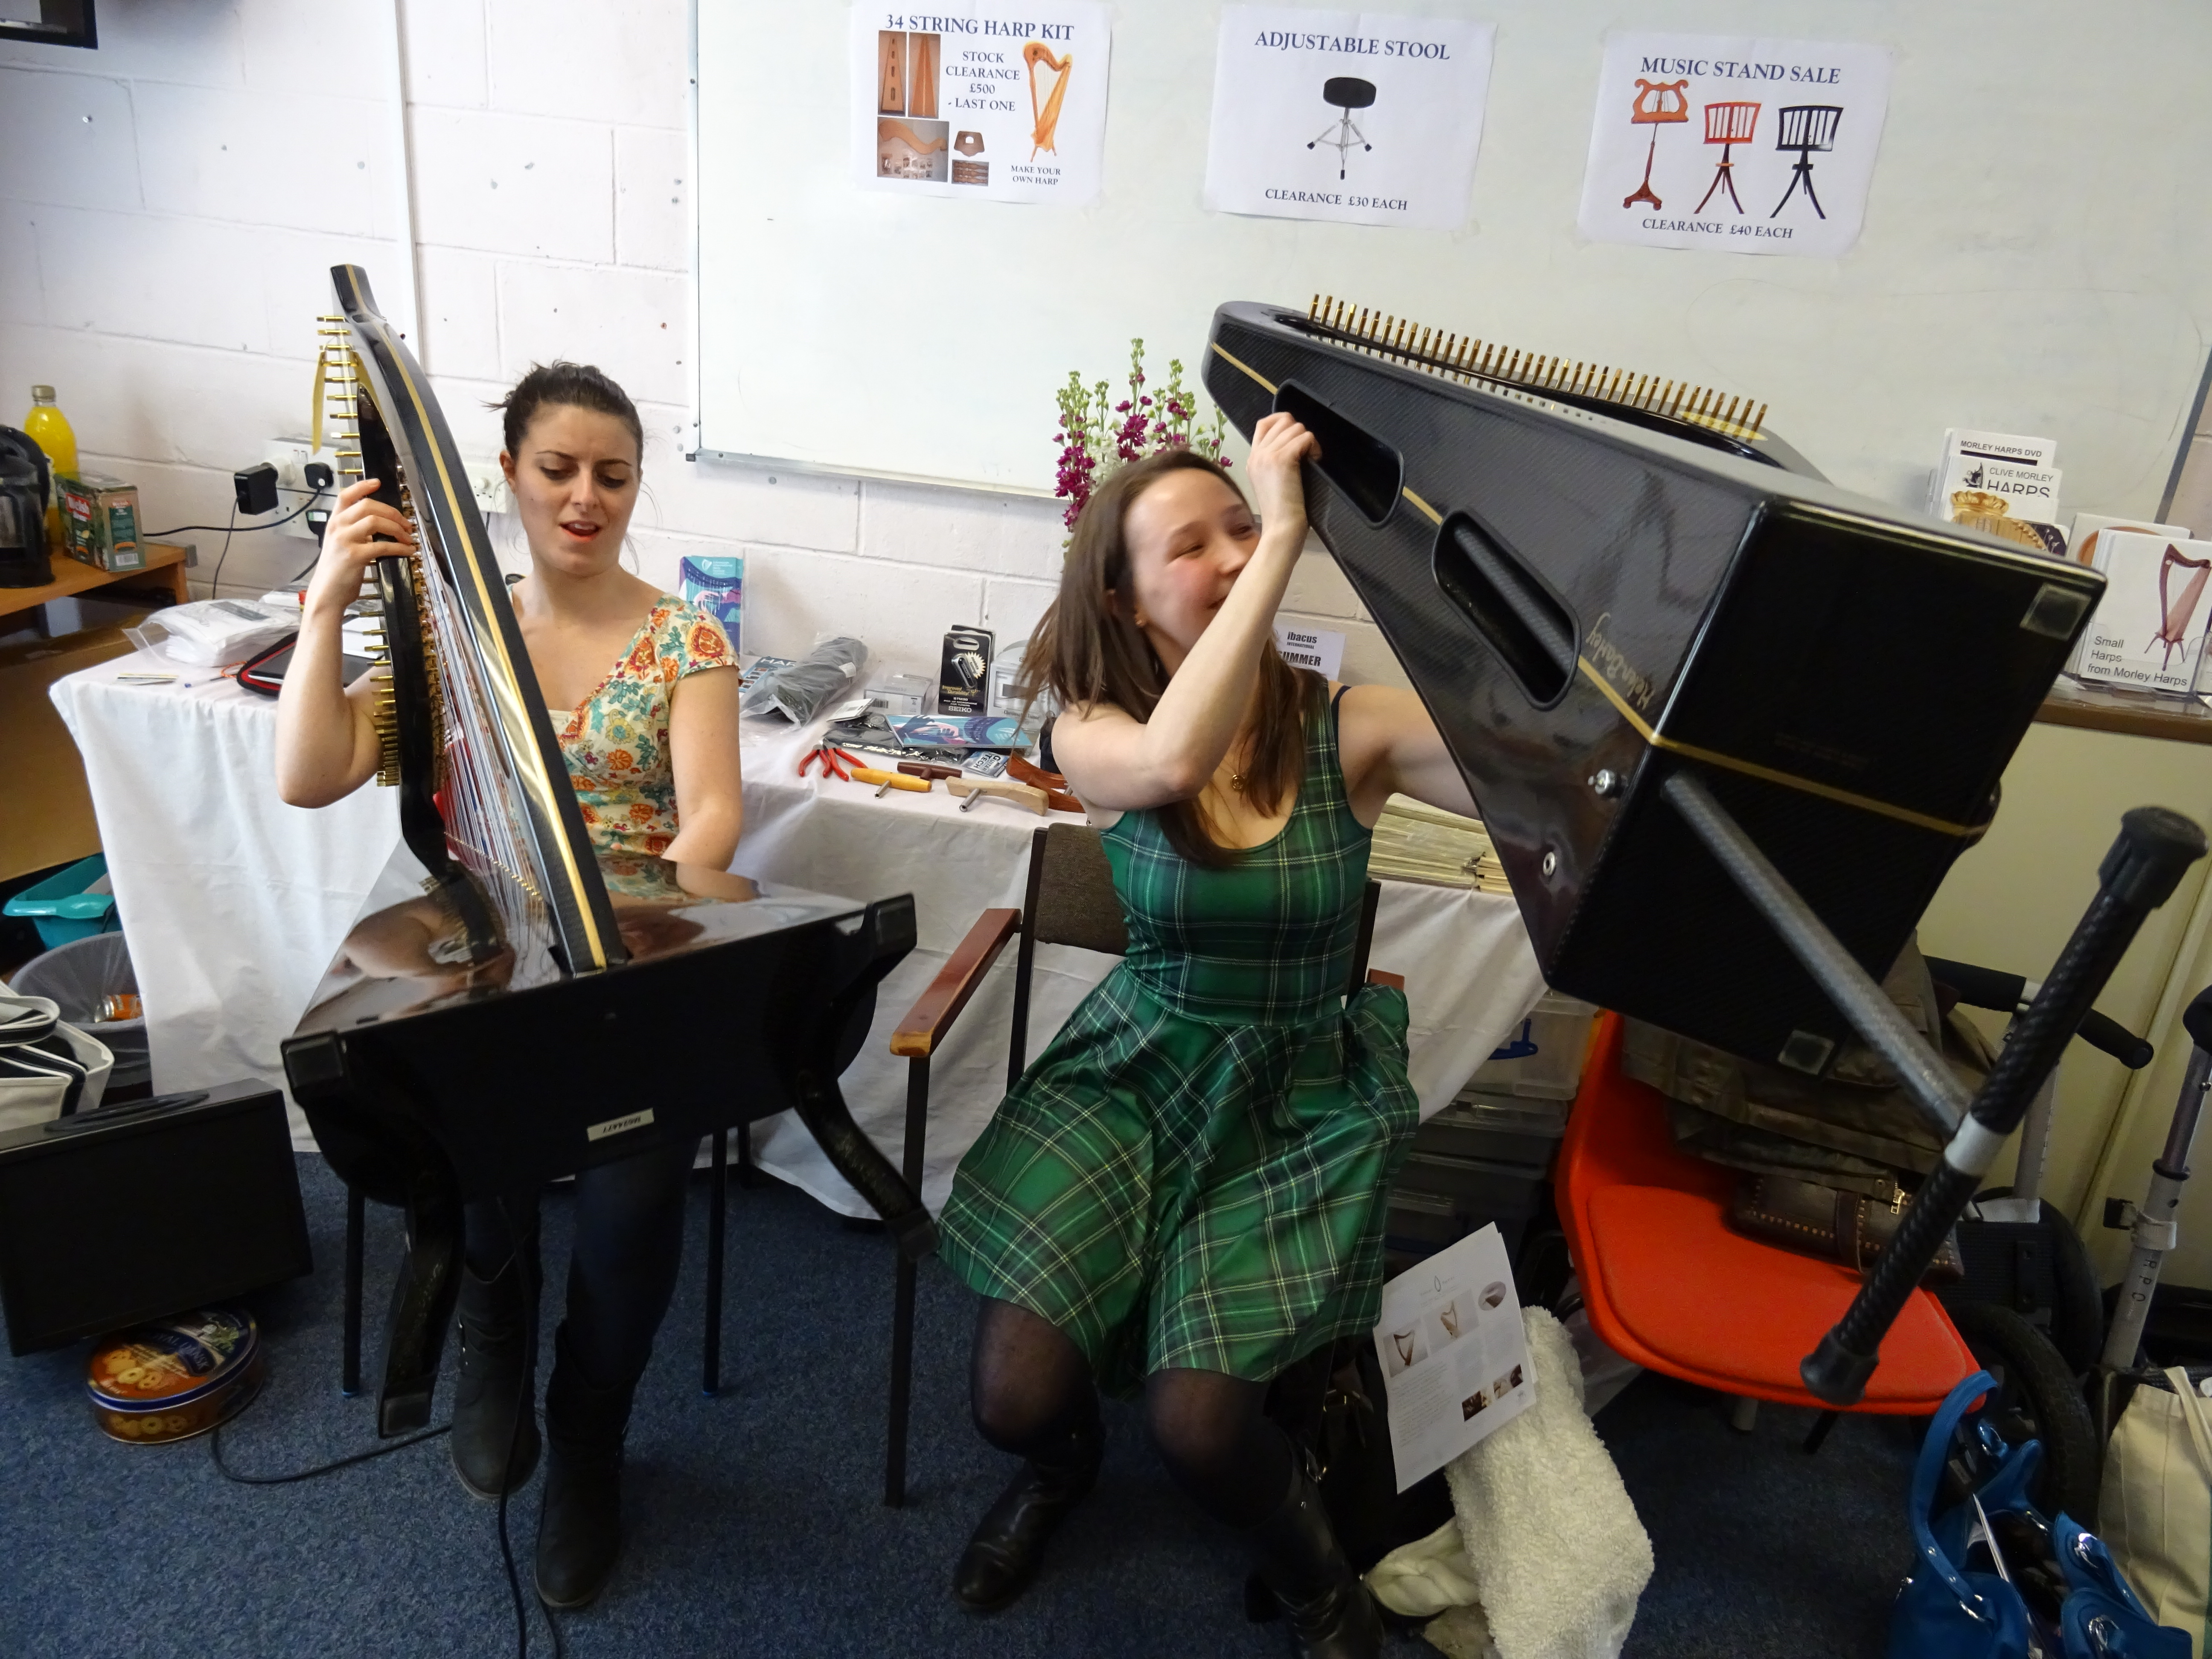 Edinburgh International Harp Festival 2015 – Angelina Warburton